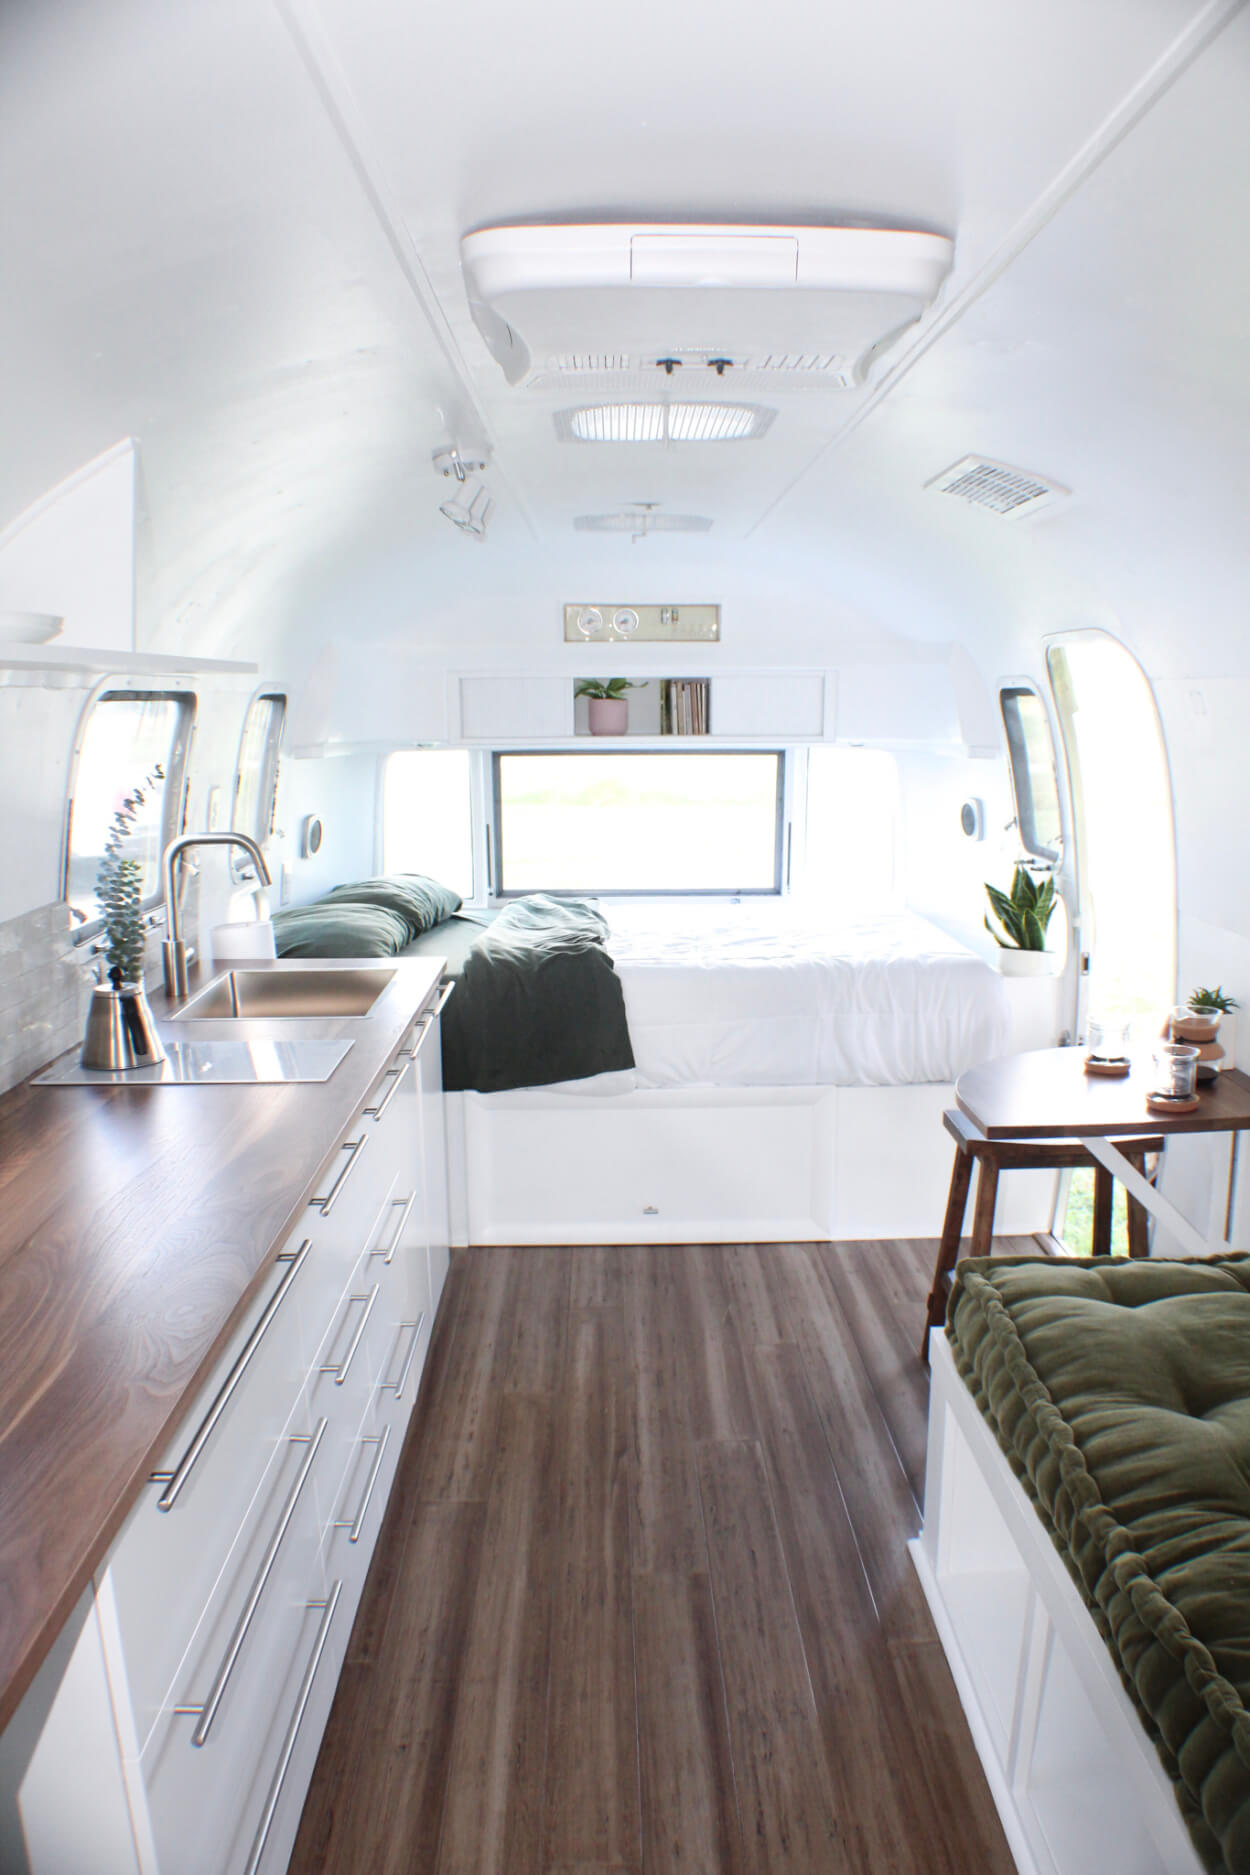 Mattox the Airstream10